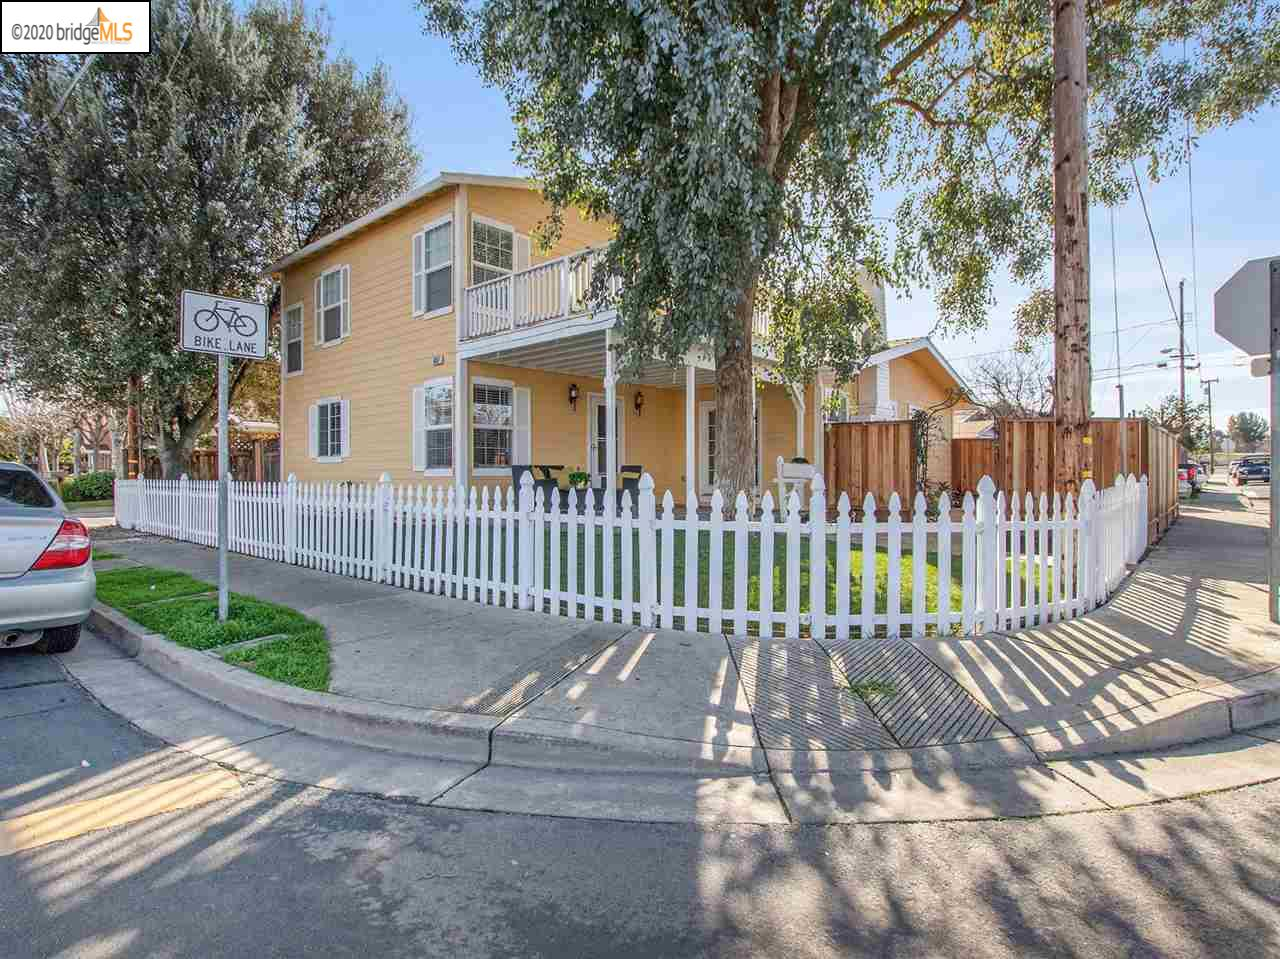 457 1St St, BRENTWOOD, CA 94513